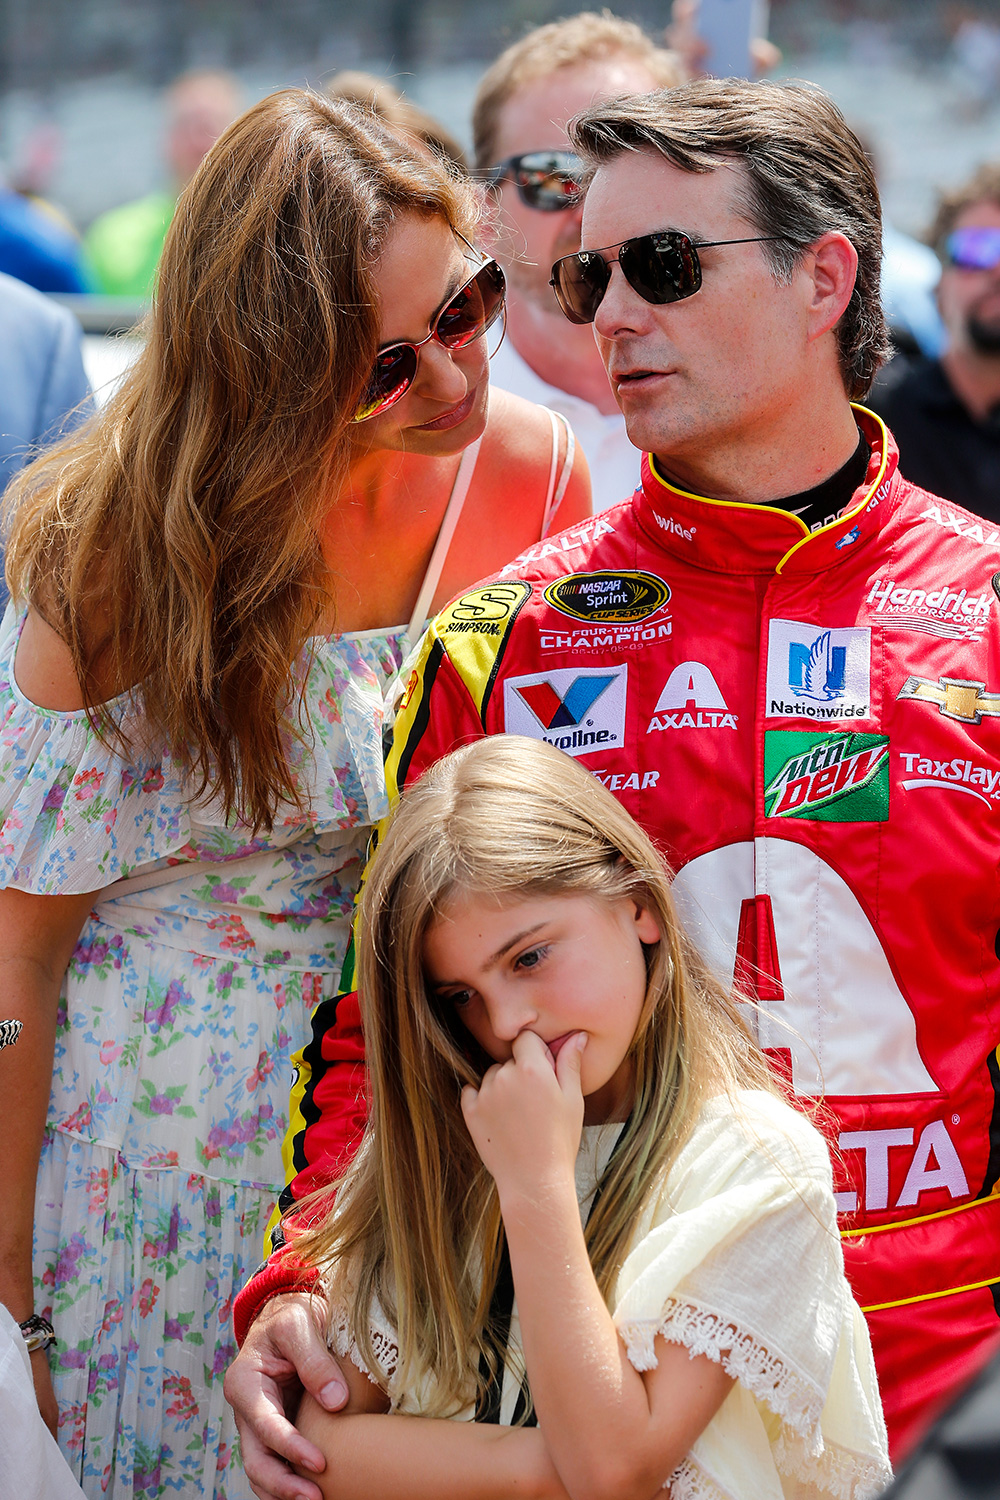 Jeff Gordon Returns Out Of Retirement Into Brickyard Sporting News